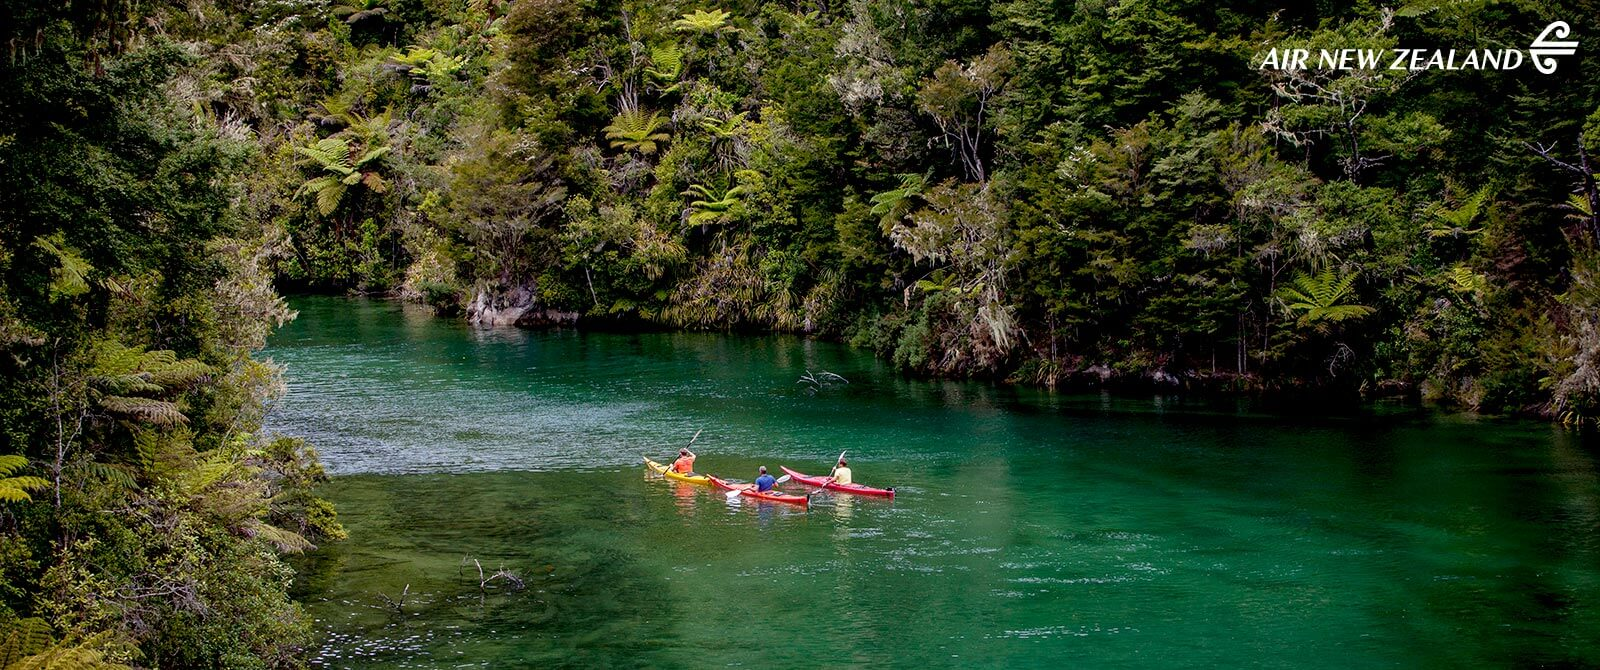 Abel Tasman National Park Kayaking - New Zealand Highlights: Scenery, Adventure, and Wine Package